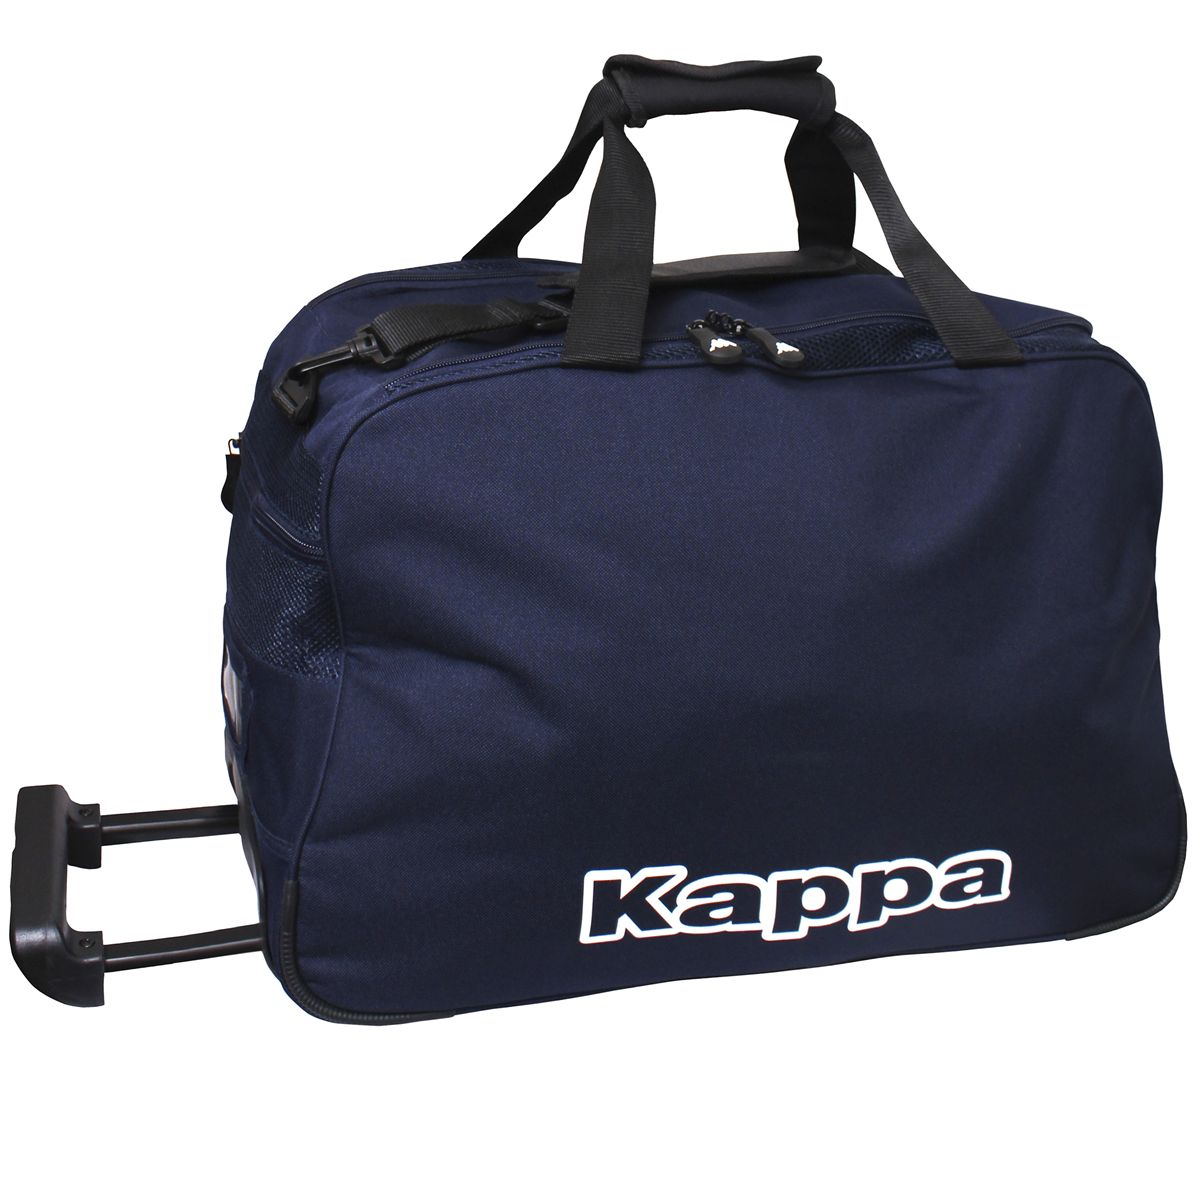 Kappa Trolley Bag Travel Man Woman